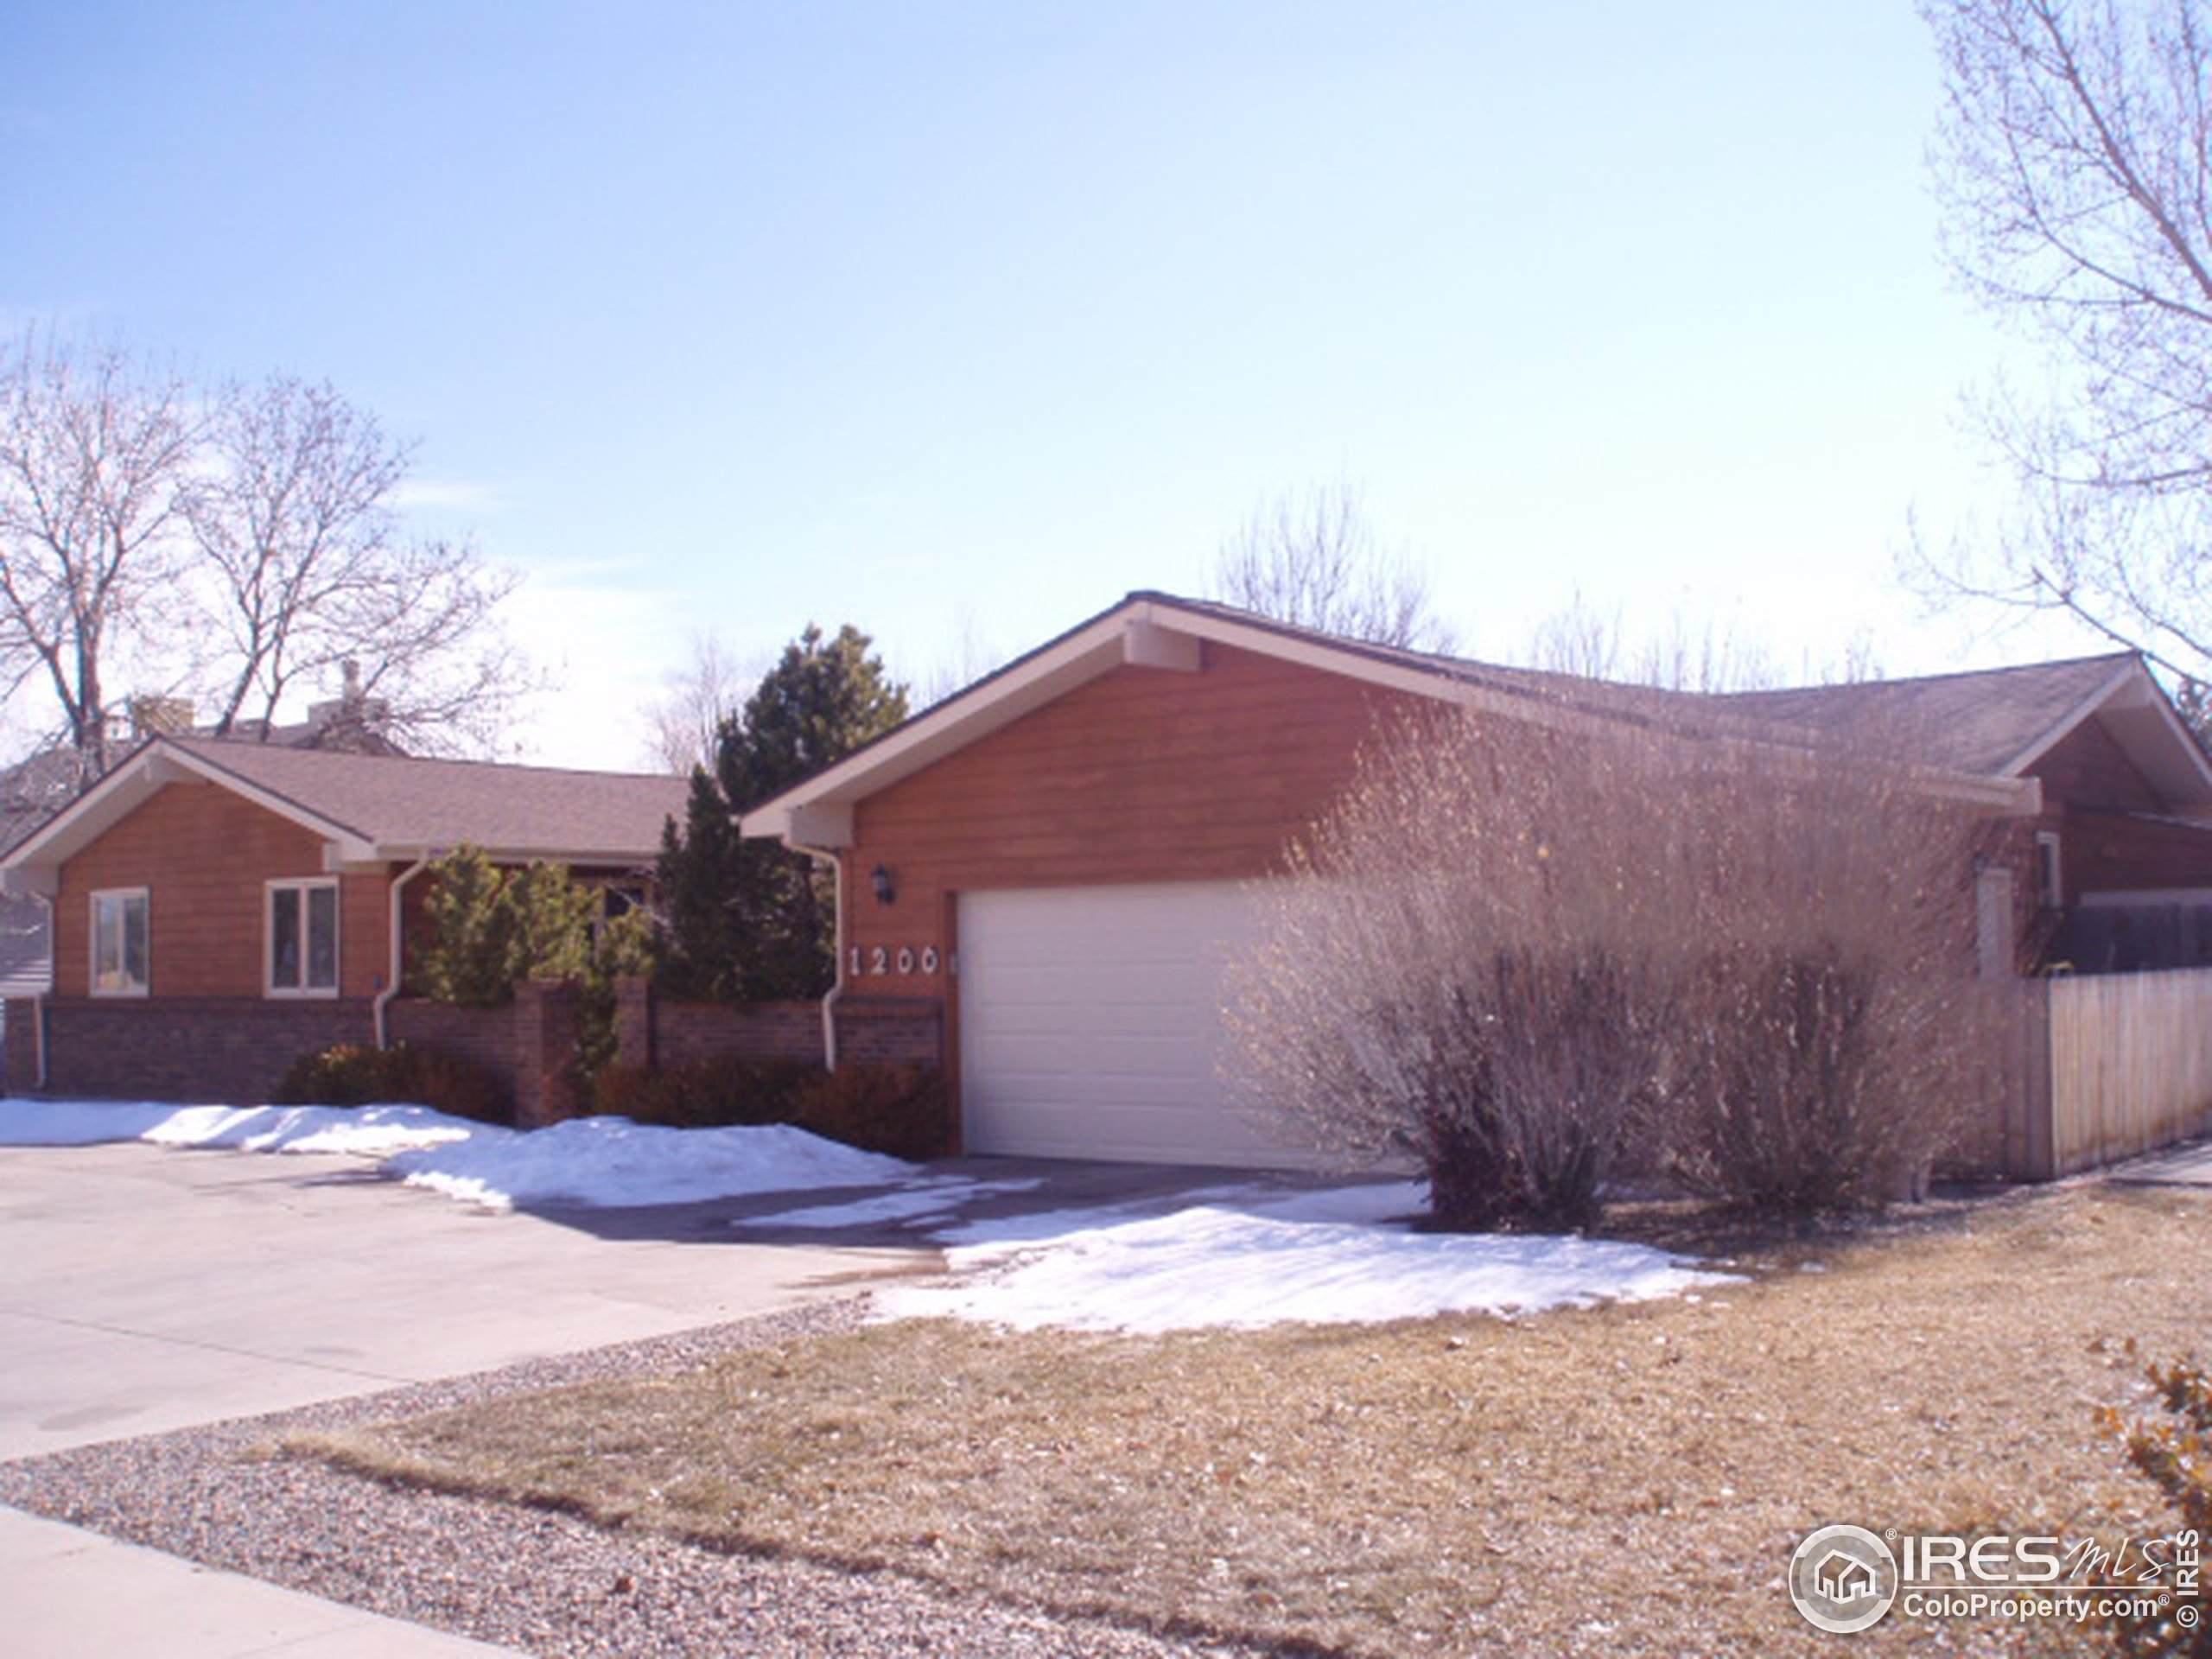 4 Benchmark Dr, Boulder, CO 80303 (MLS #921923) :: 8z Real Estate